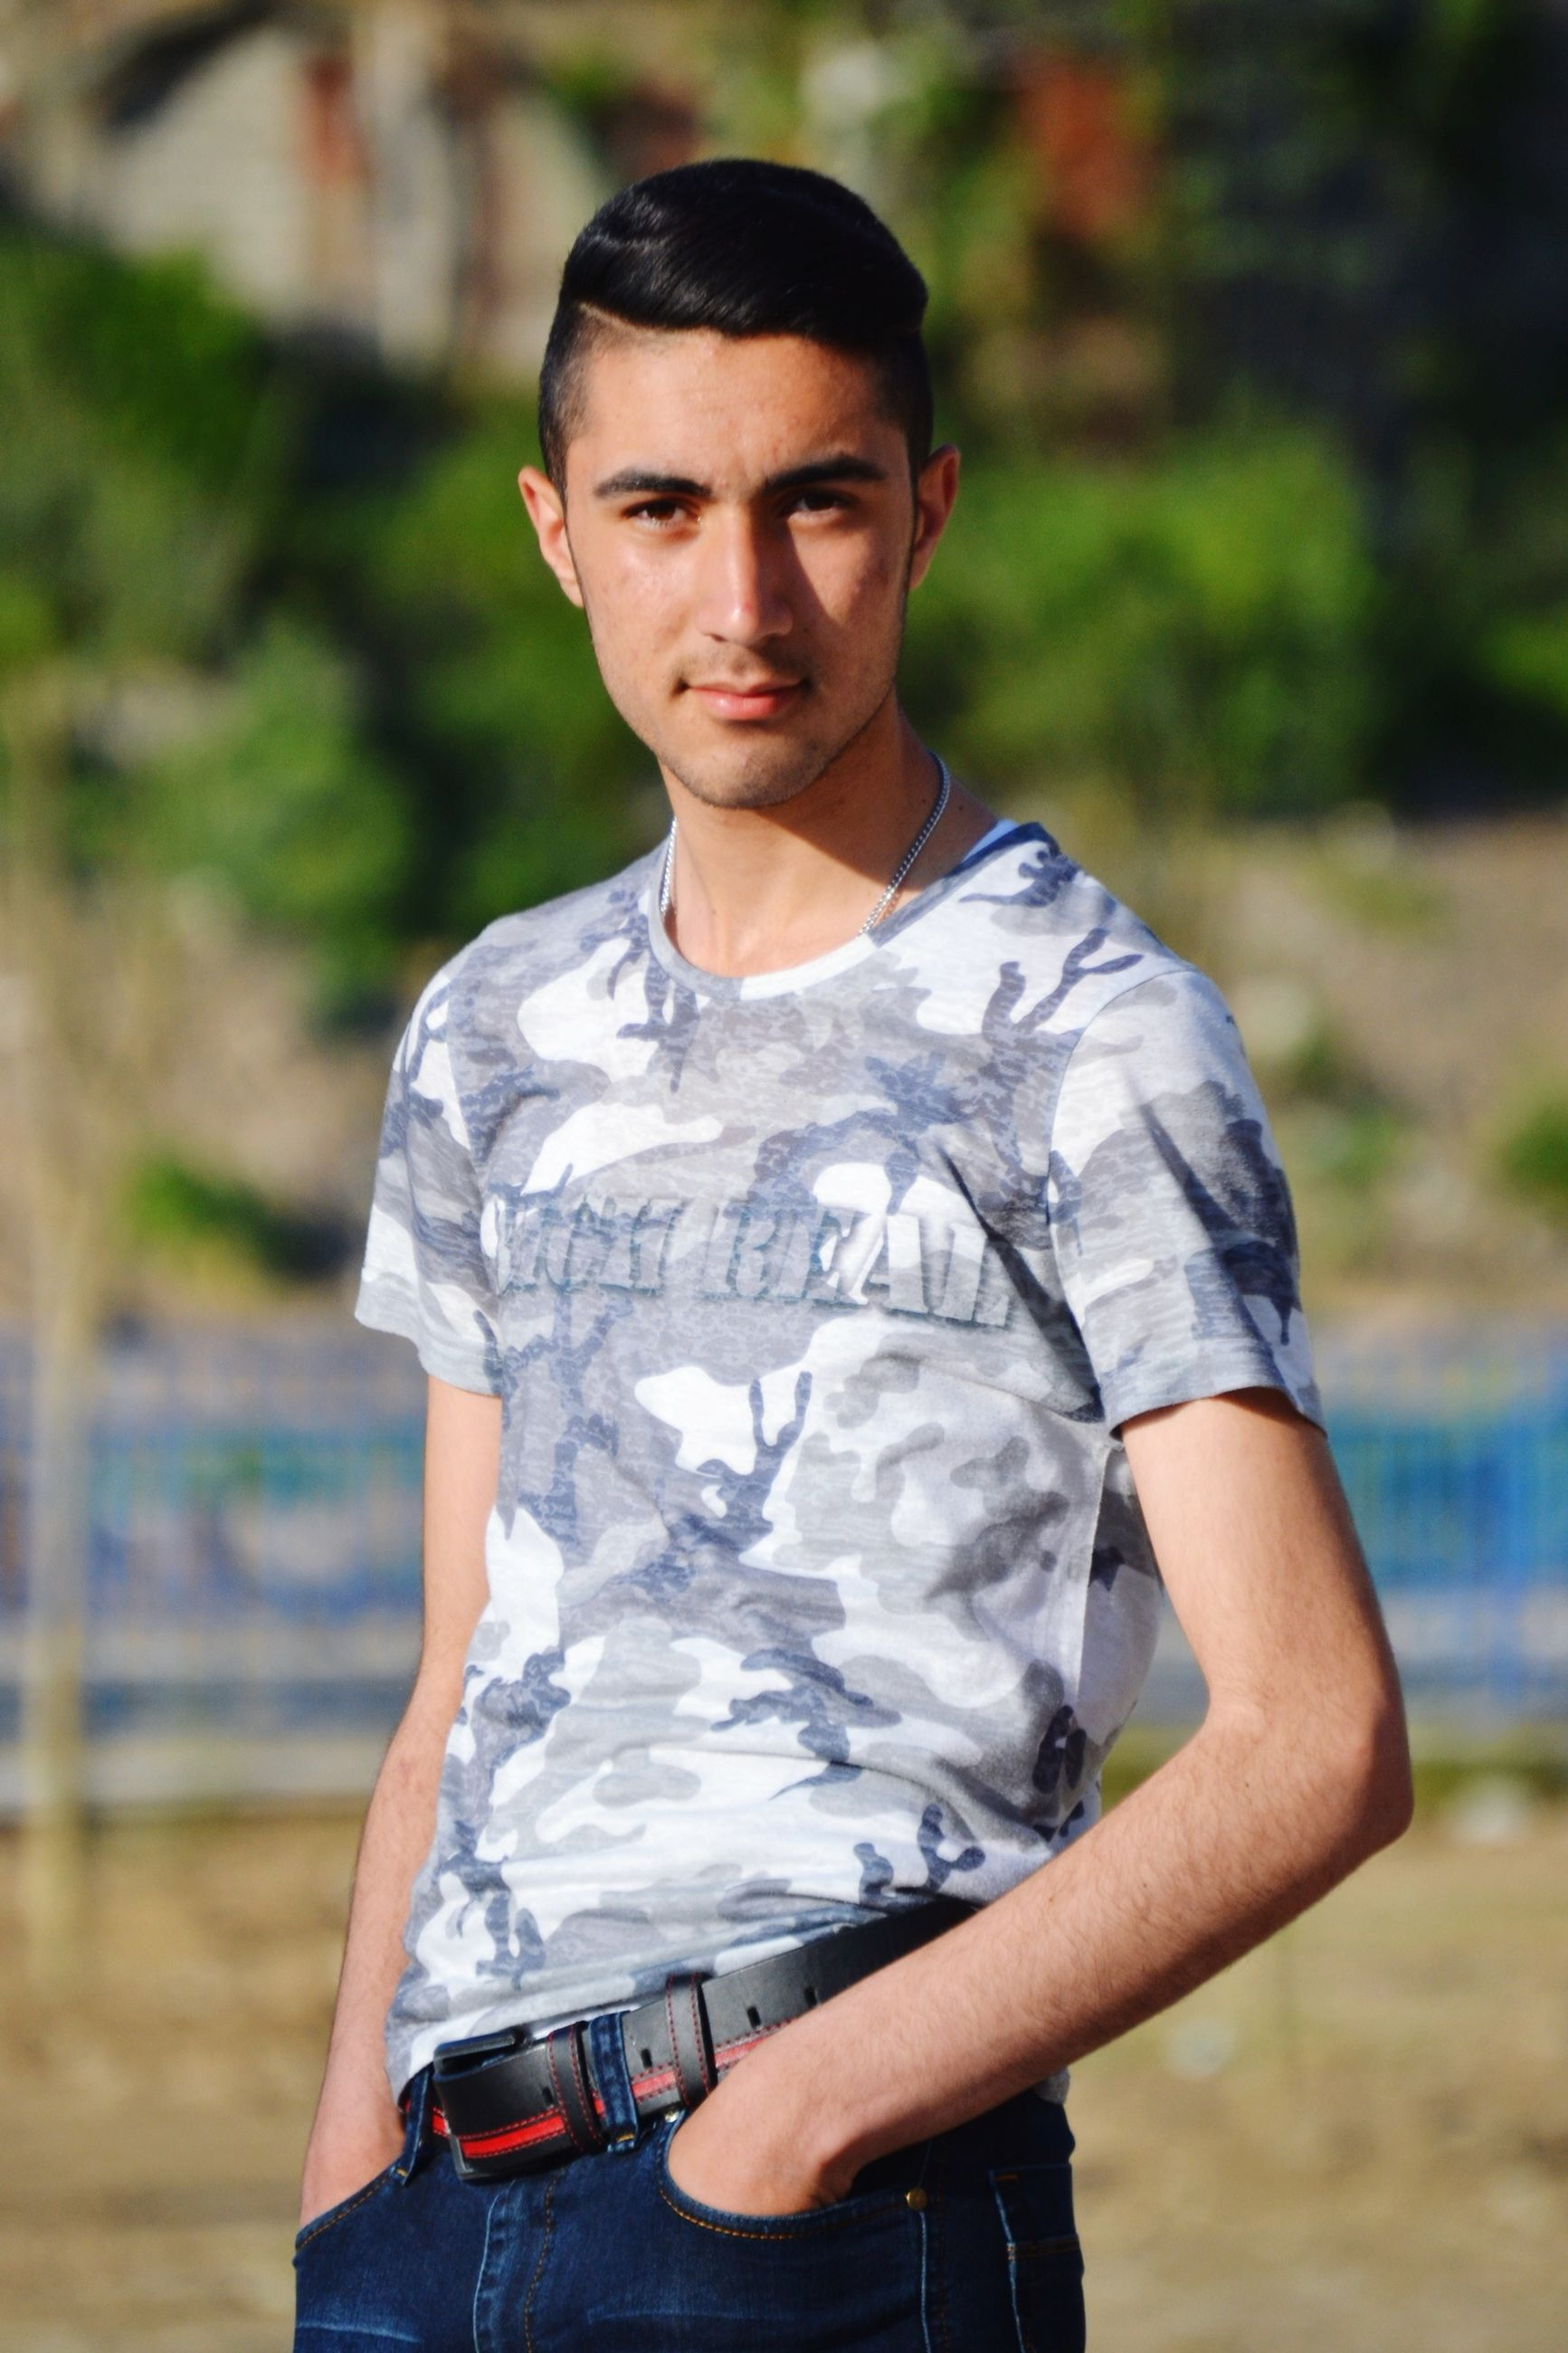 lifestyles, focus on foreground, casual clothing, leisure activity, young adult, person, looking at camera, portrait, young men, front view, standing, three quarter length, waist up, sunglasses, smiling, holding, t-shirt